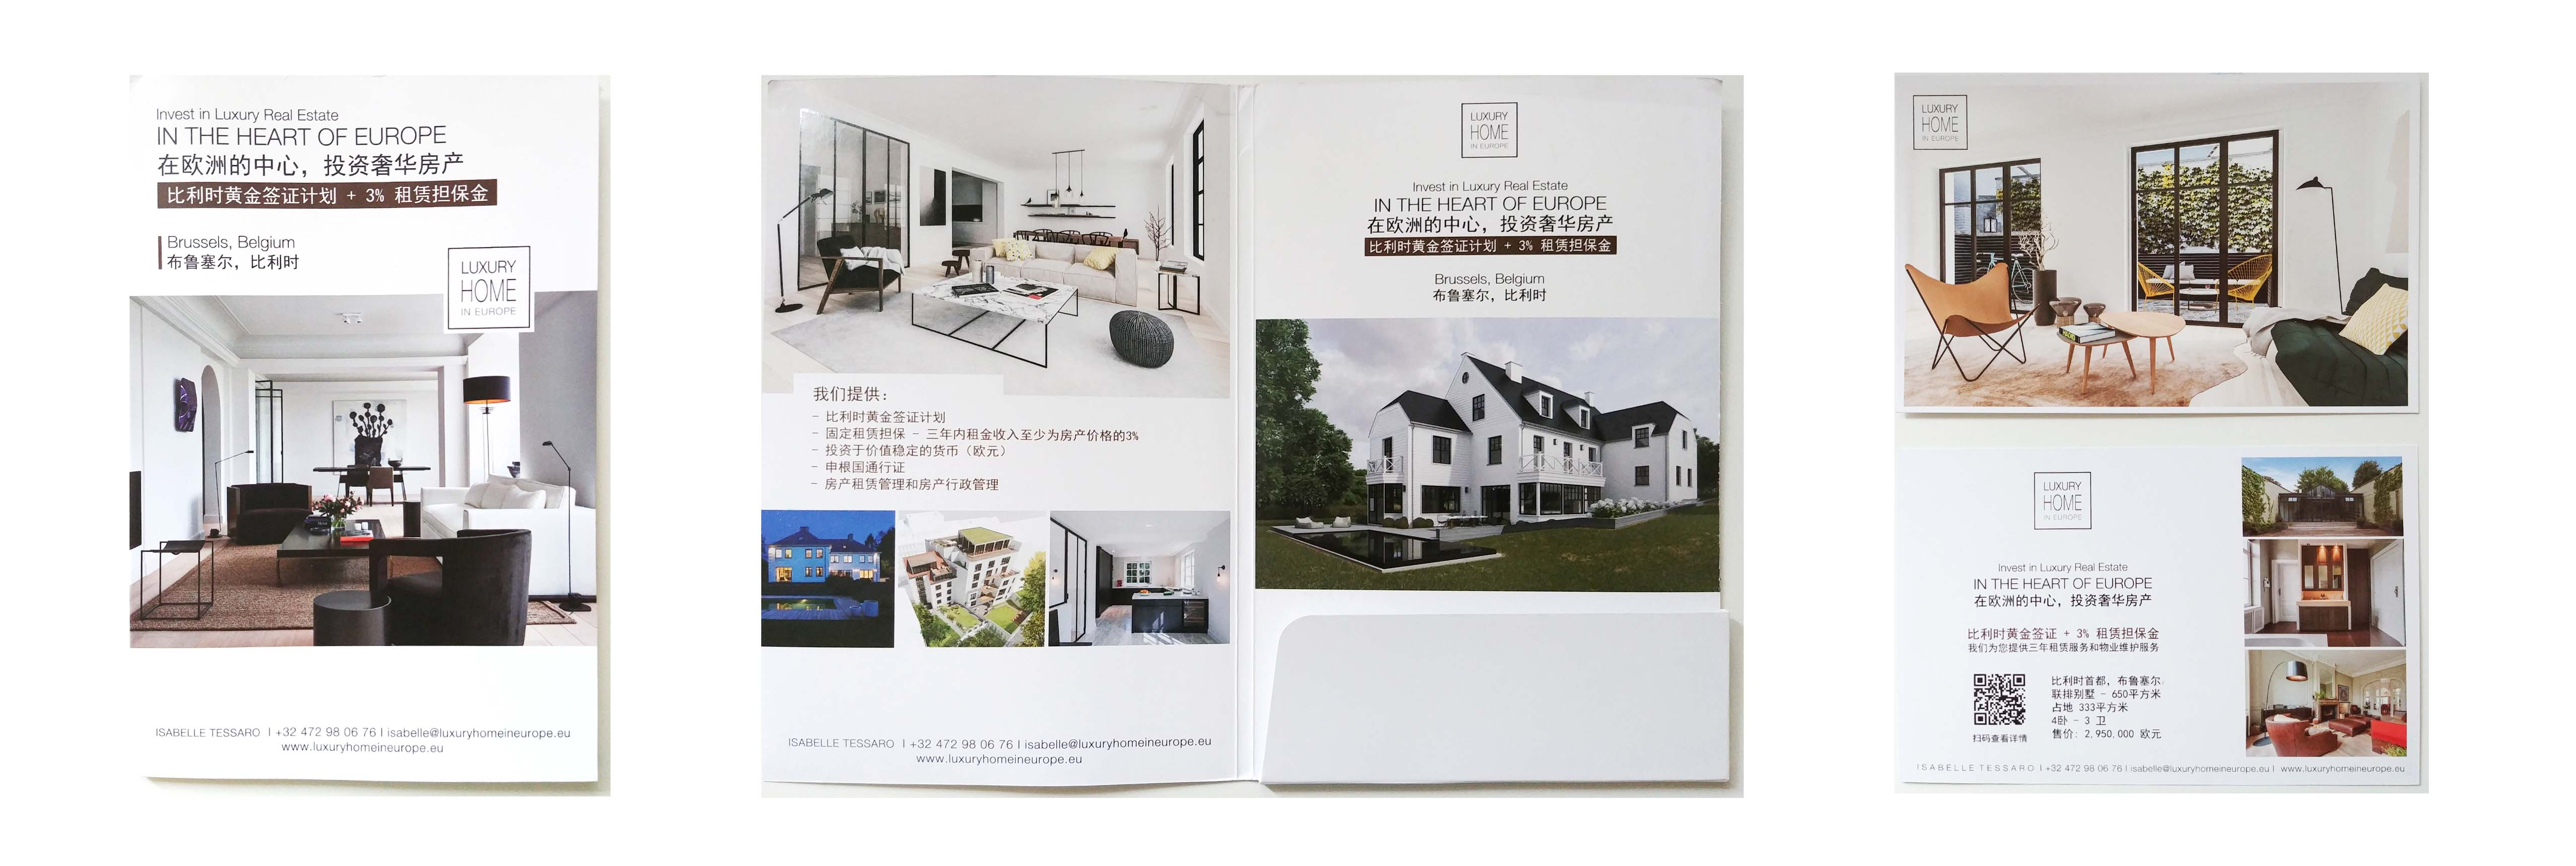 Luxury Home in Europe Brochure